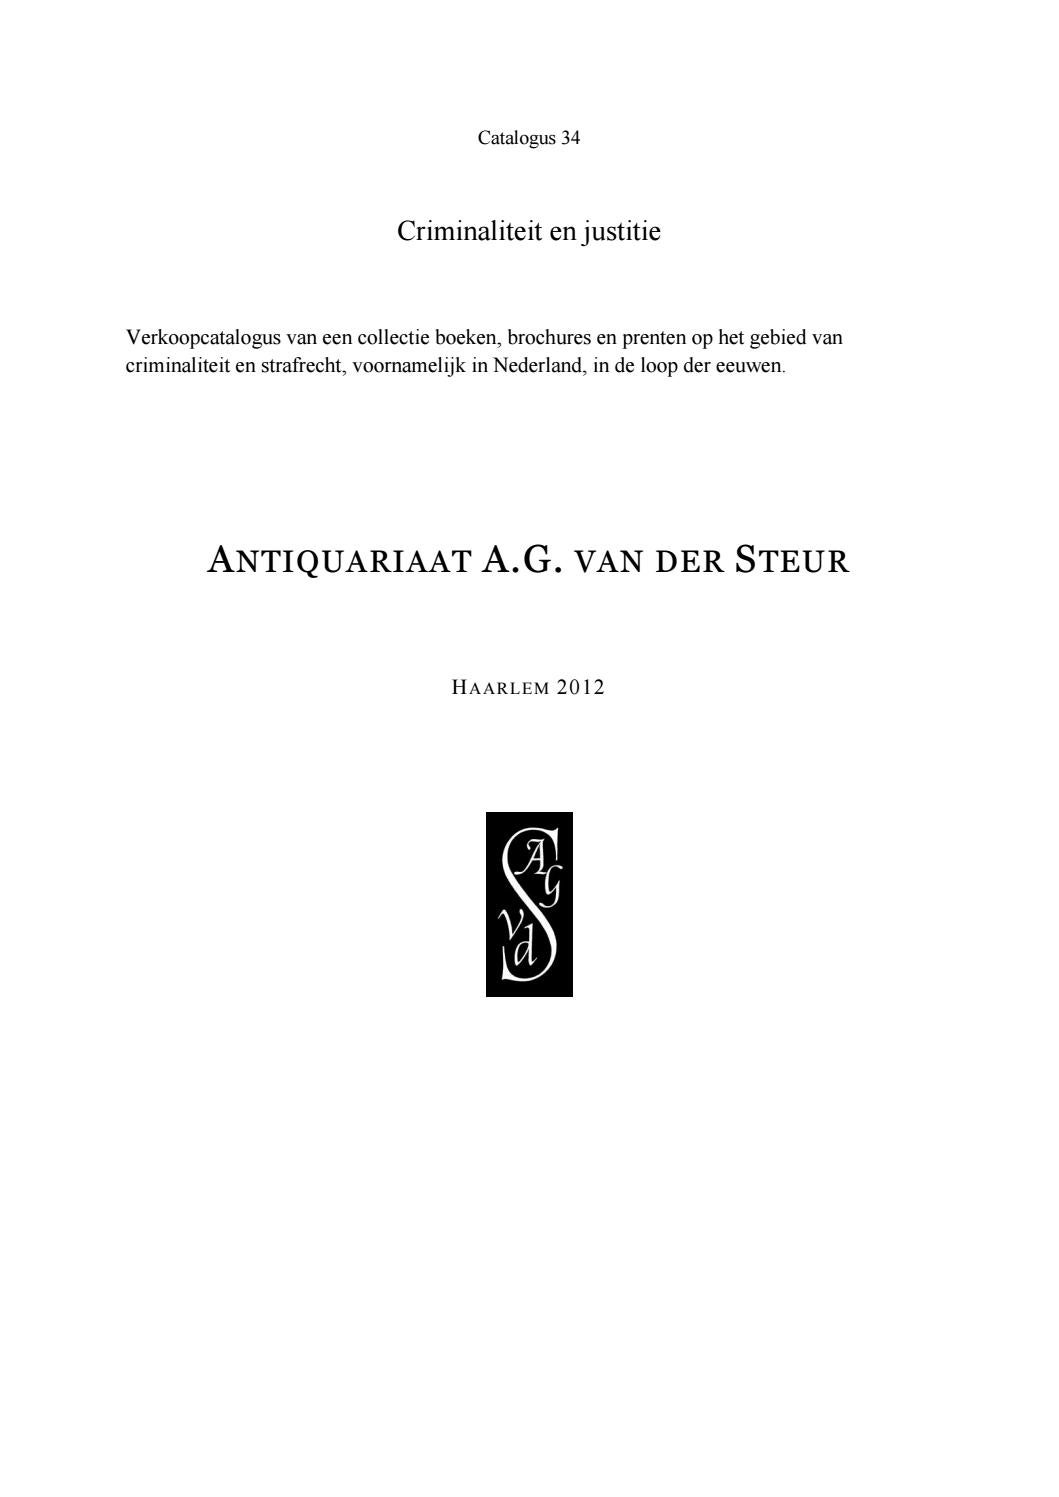 Catalogue 34: Criminaliteit en Justitie by Antiquariaat van der ...